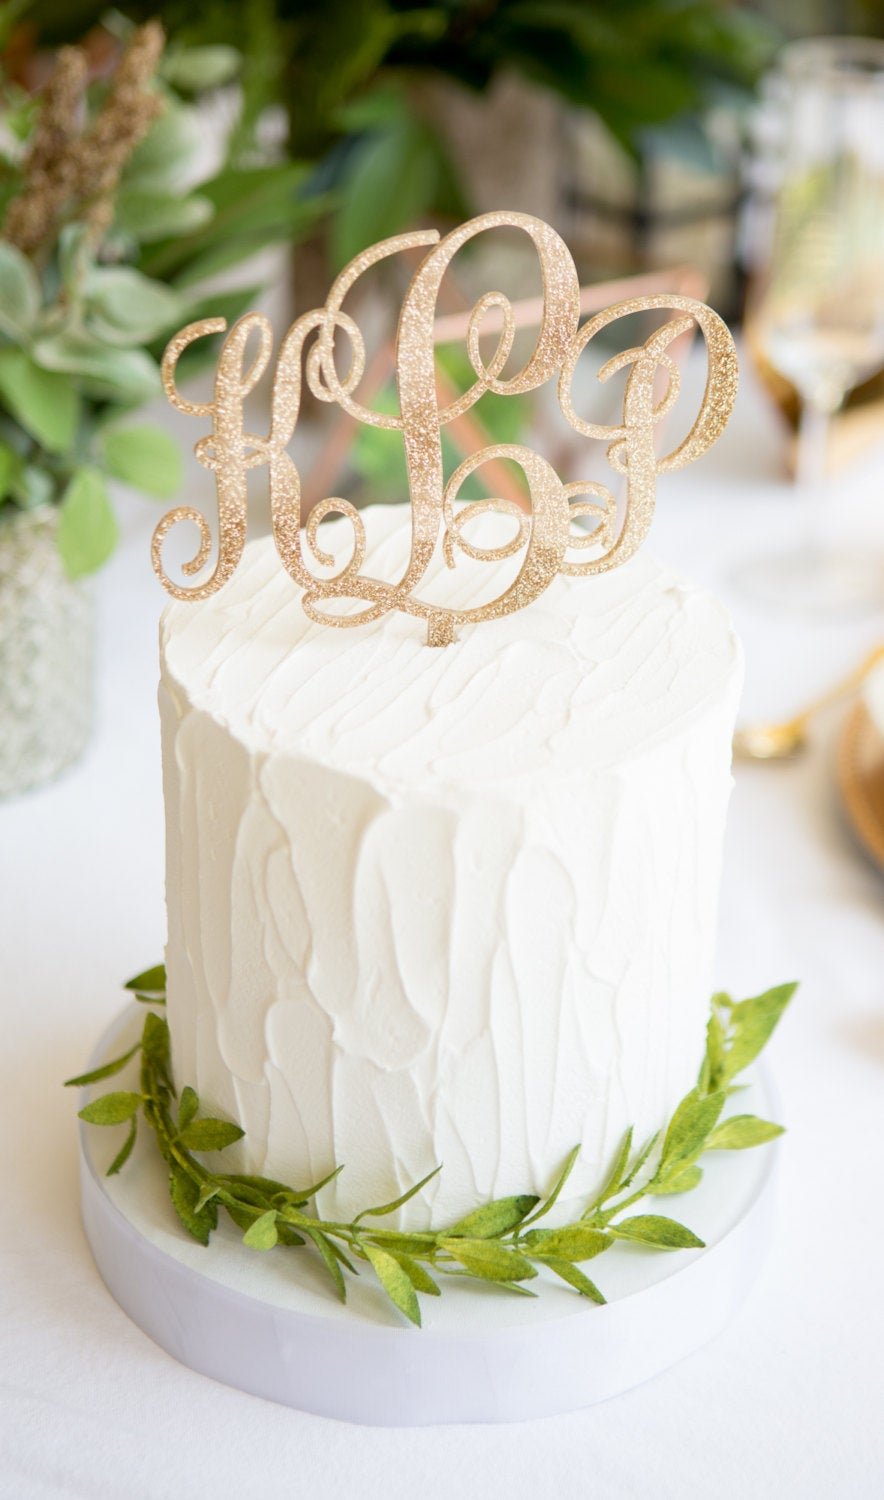 Monogram Cake Topper For Wedding, Rustic Wood Or Glitter Gold Decor, Script Personalized Wedding Party | Item - Mnt900